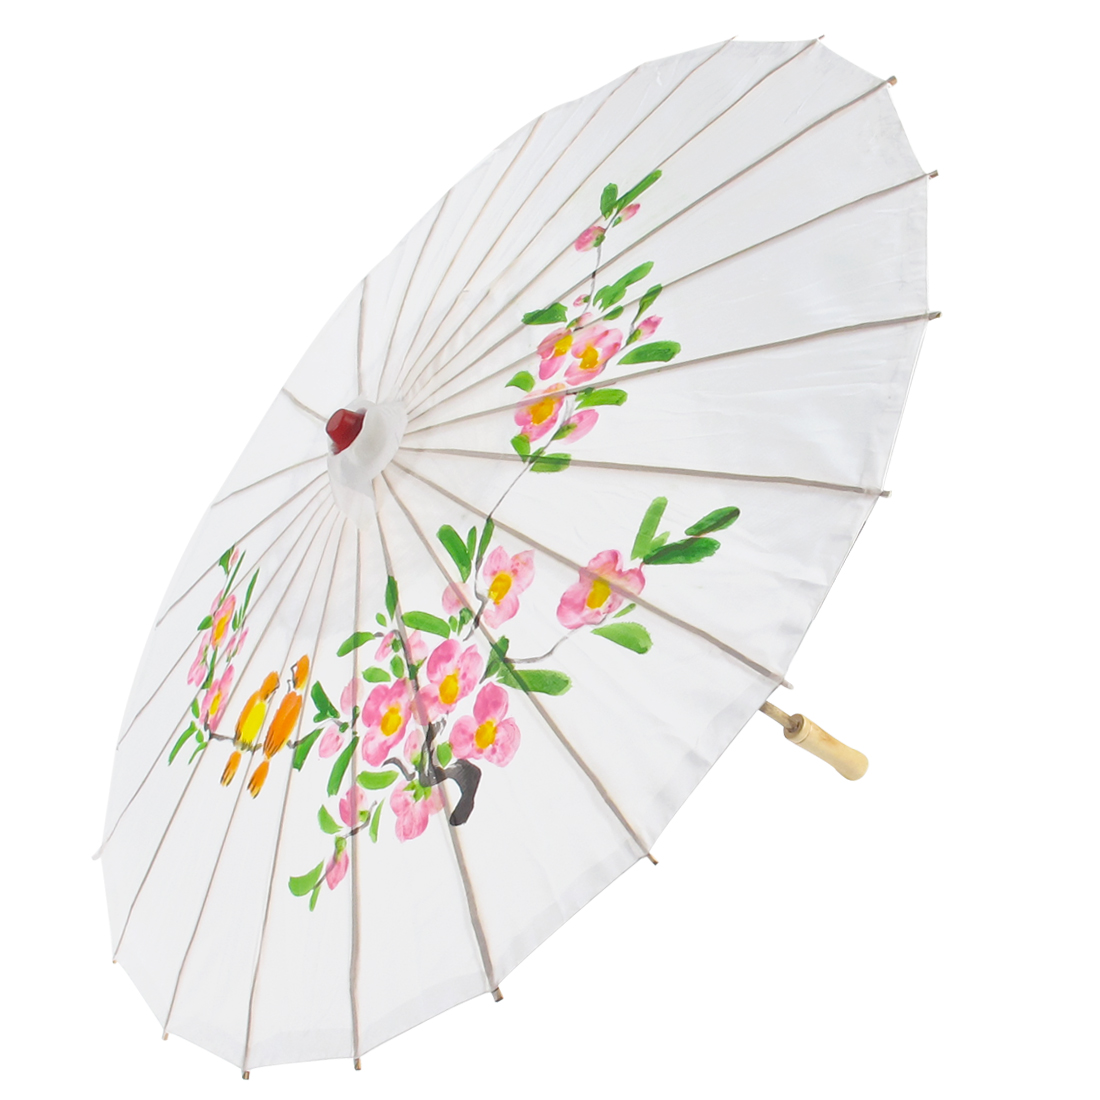 Colored Plum Blossom Orange Birds Pattern Bamboo Frame Oriental Umbrella Parasol White